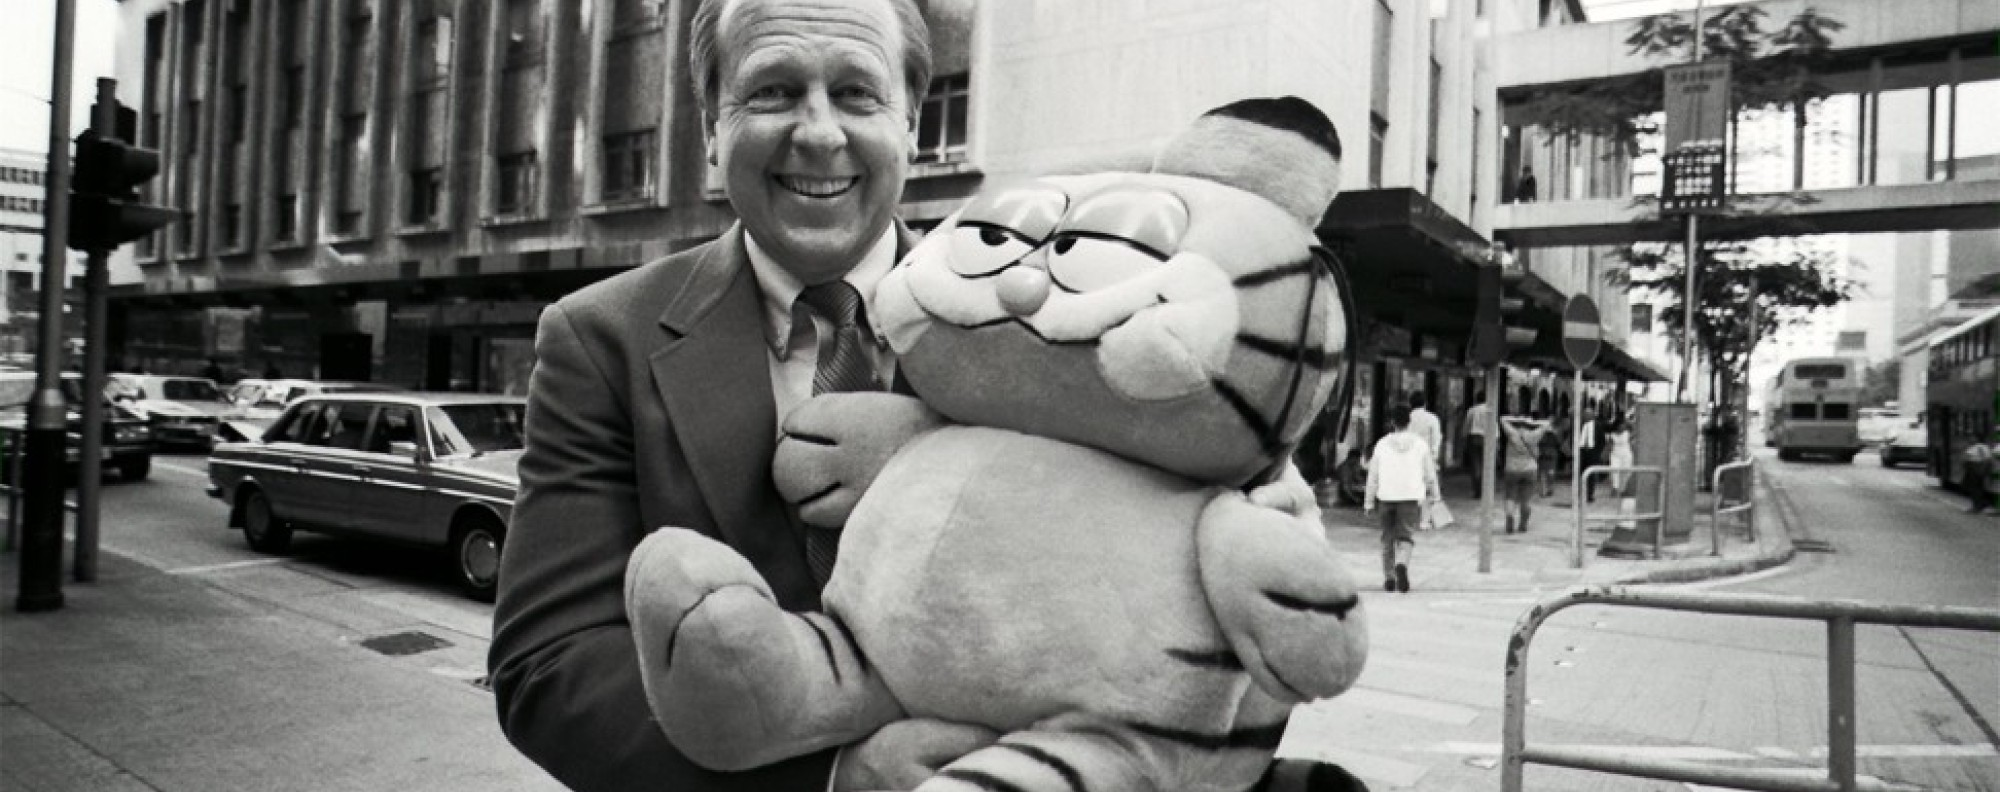 Jim Davis with Garfield in Central, Hong Kong, in October 1991. Picture: SCMP